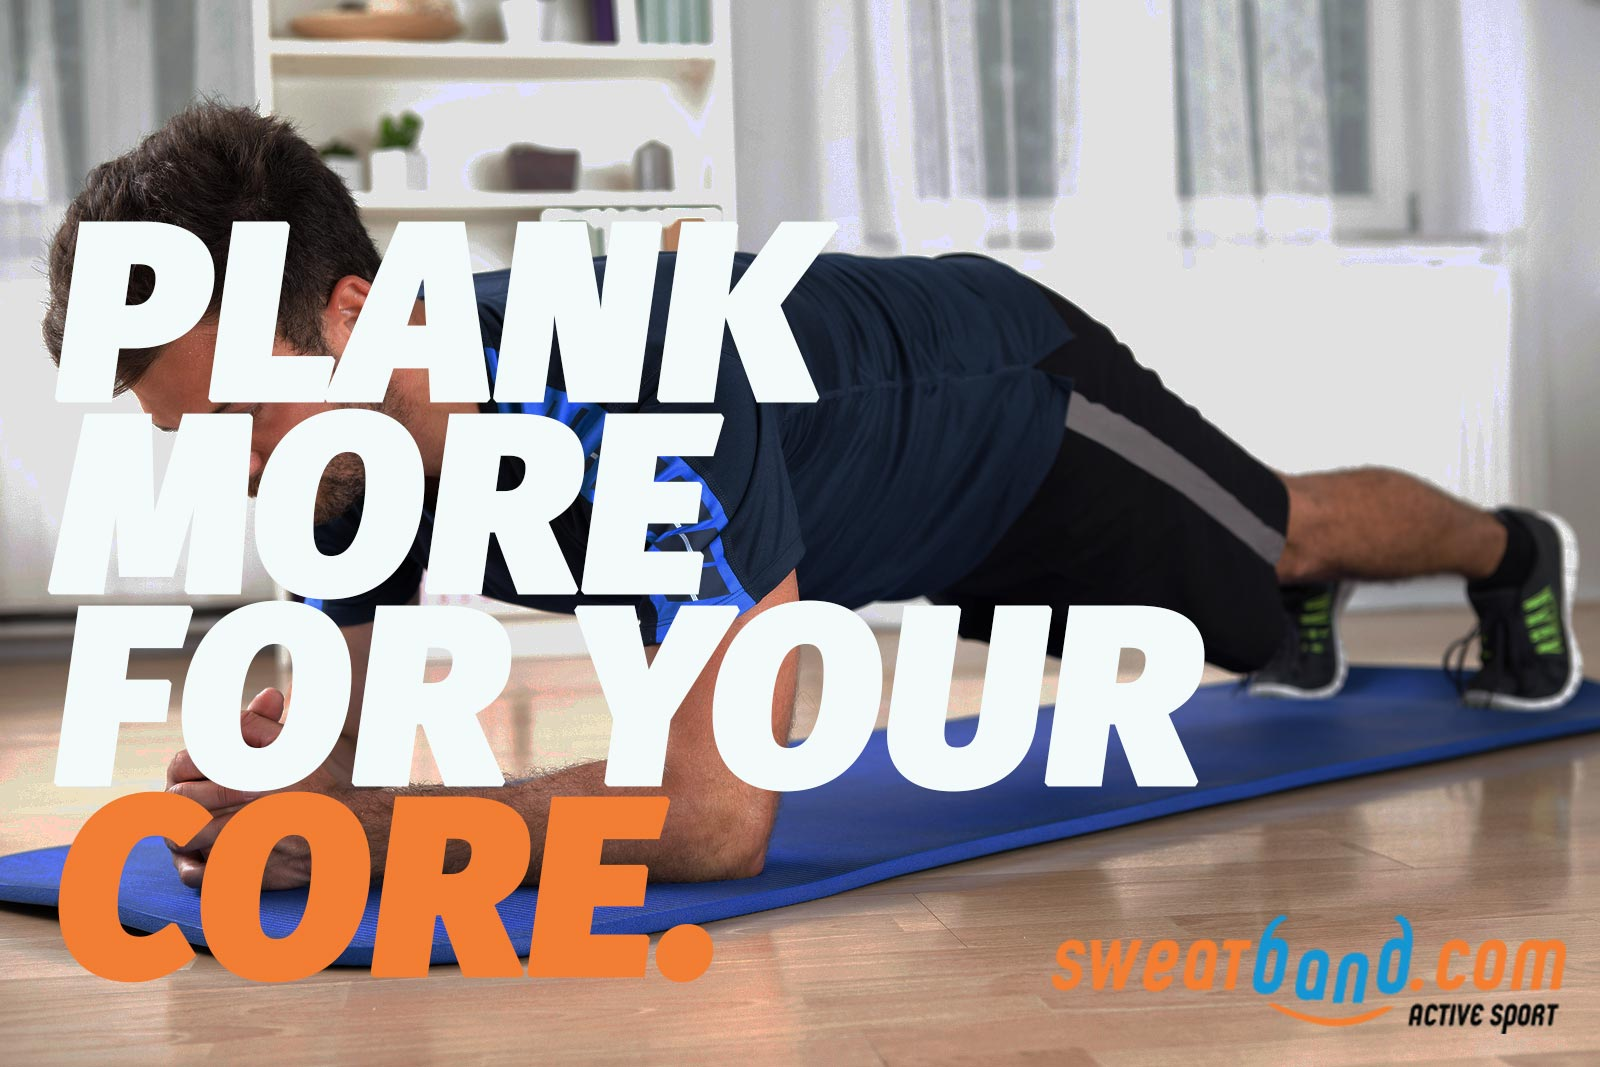 Plank more for a stronger core